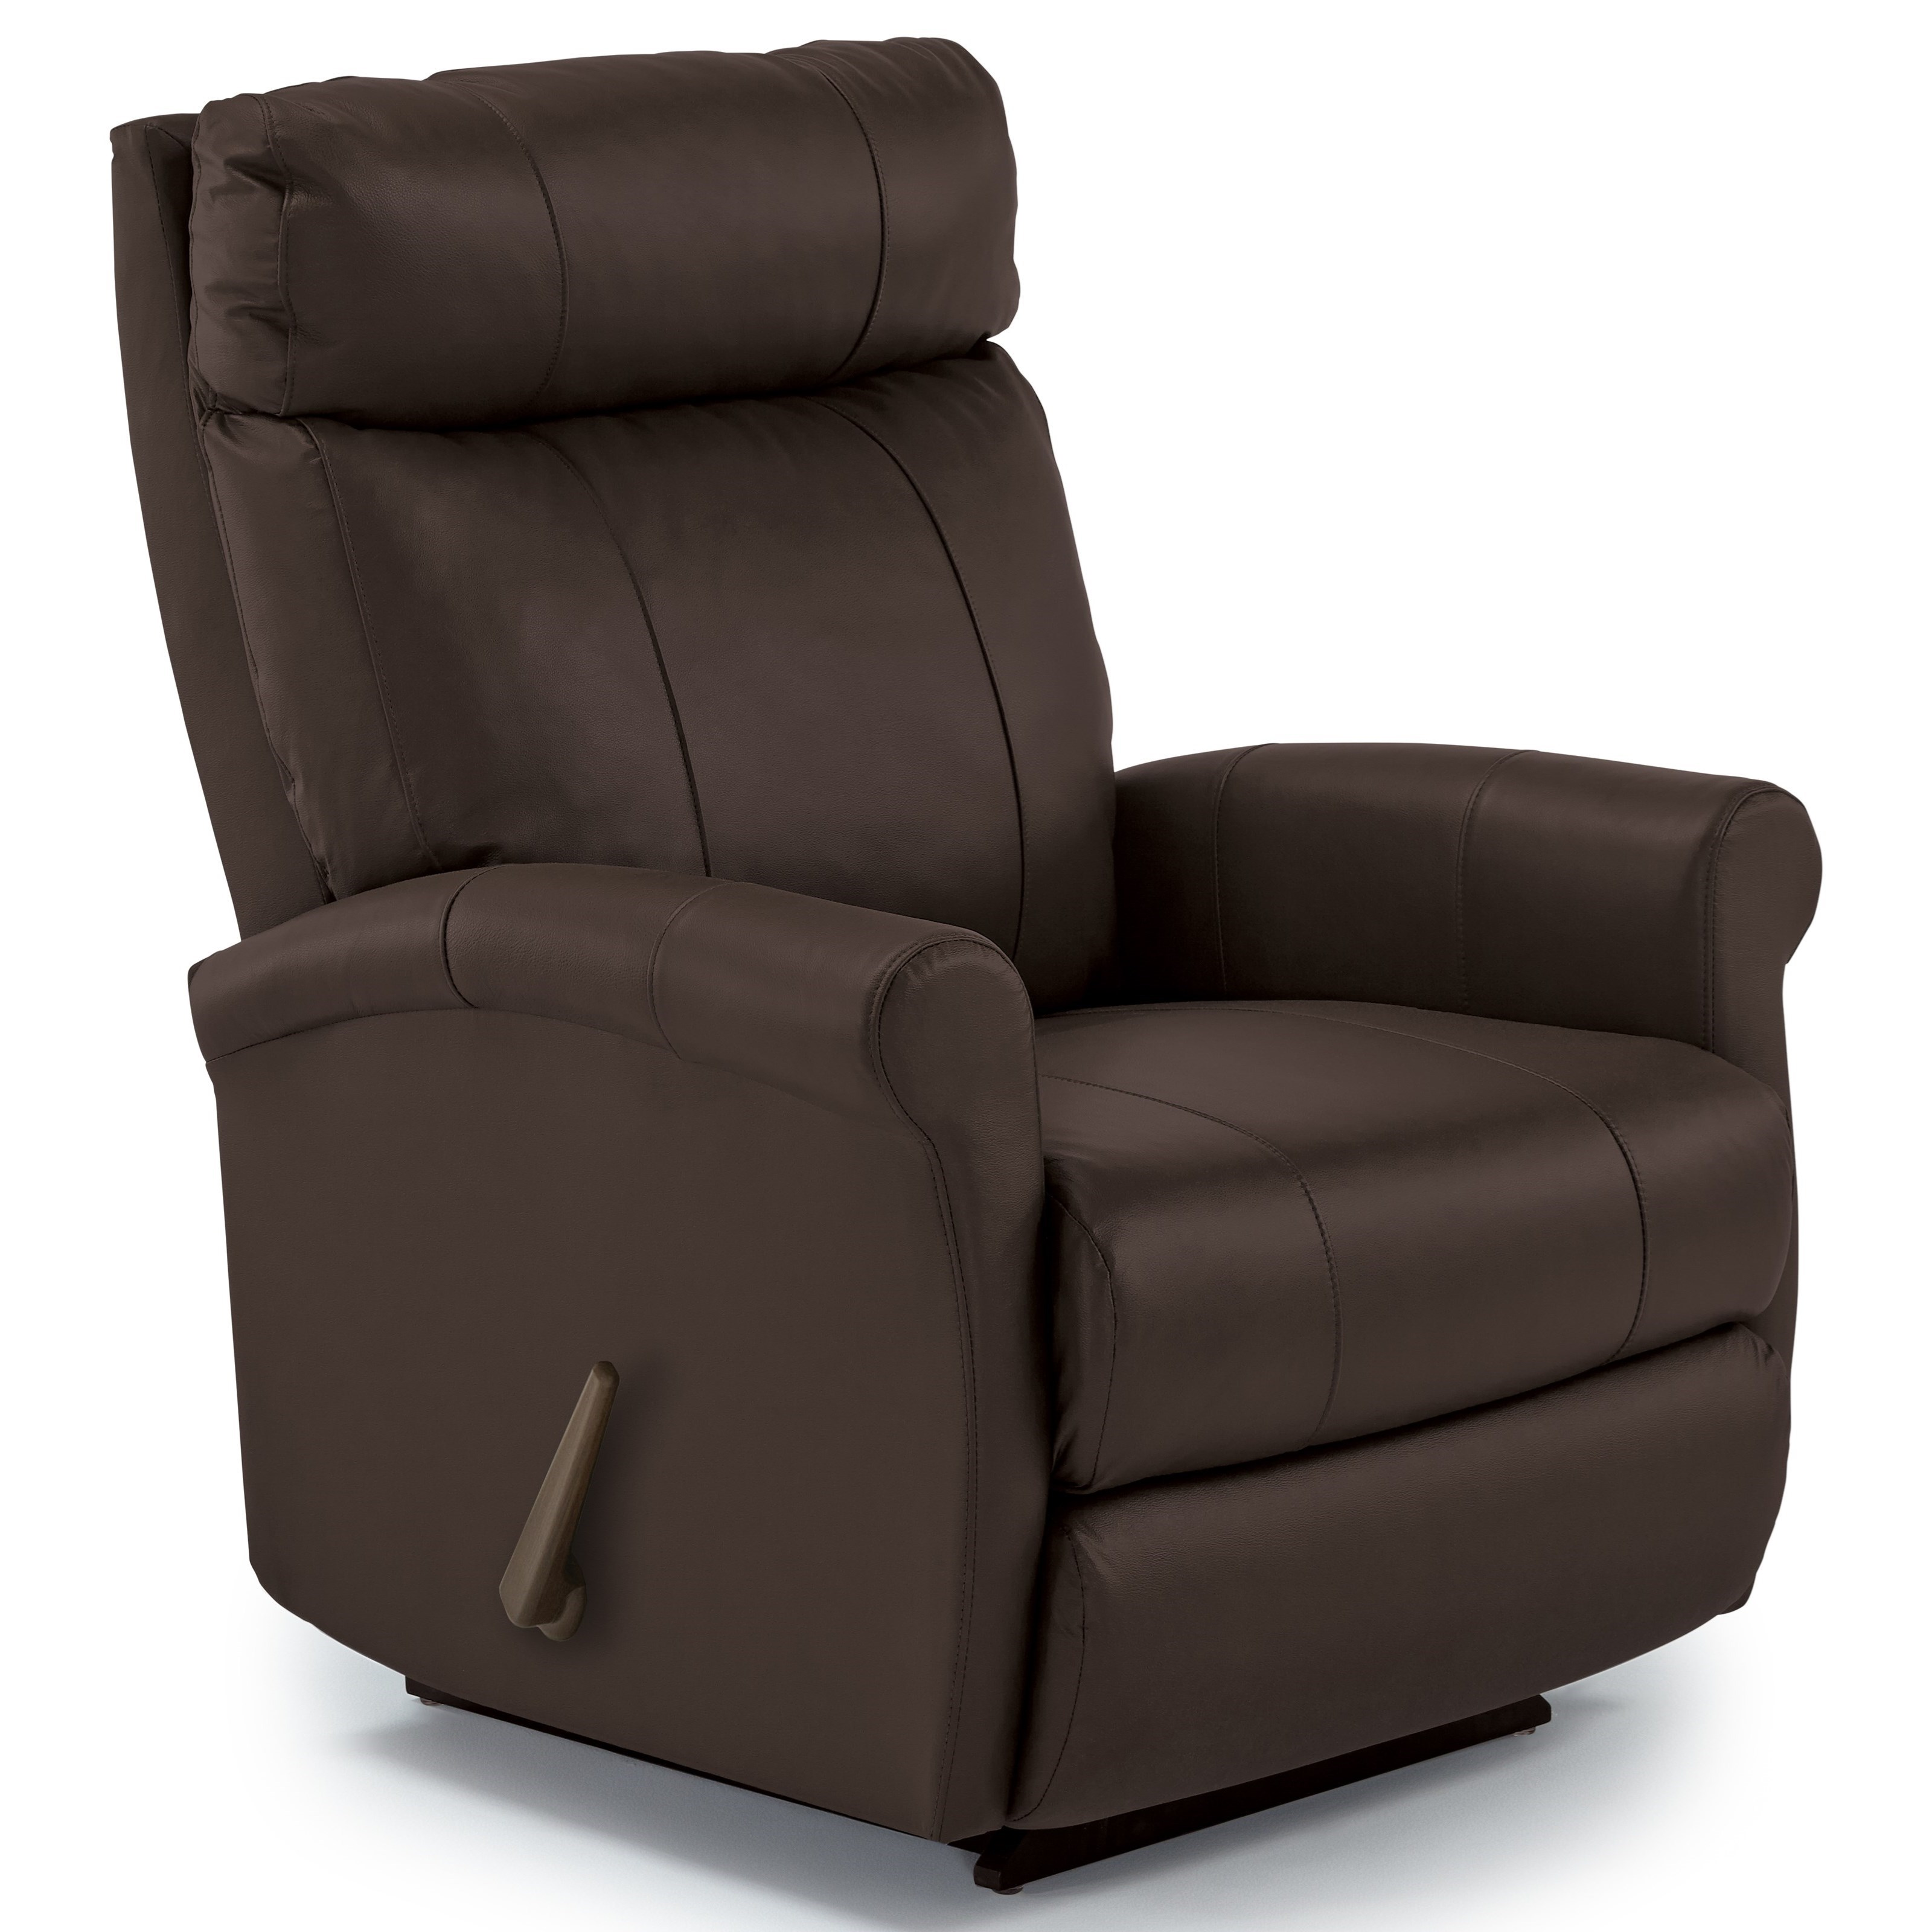 Codie Power Rocker Recliner by Best Home Furnishings at Simply Home by Lindy's